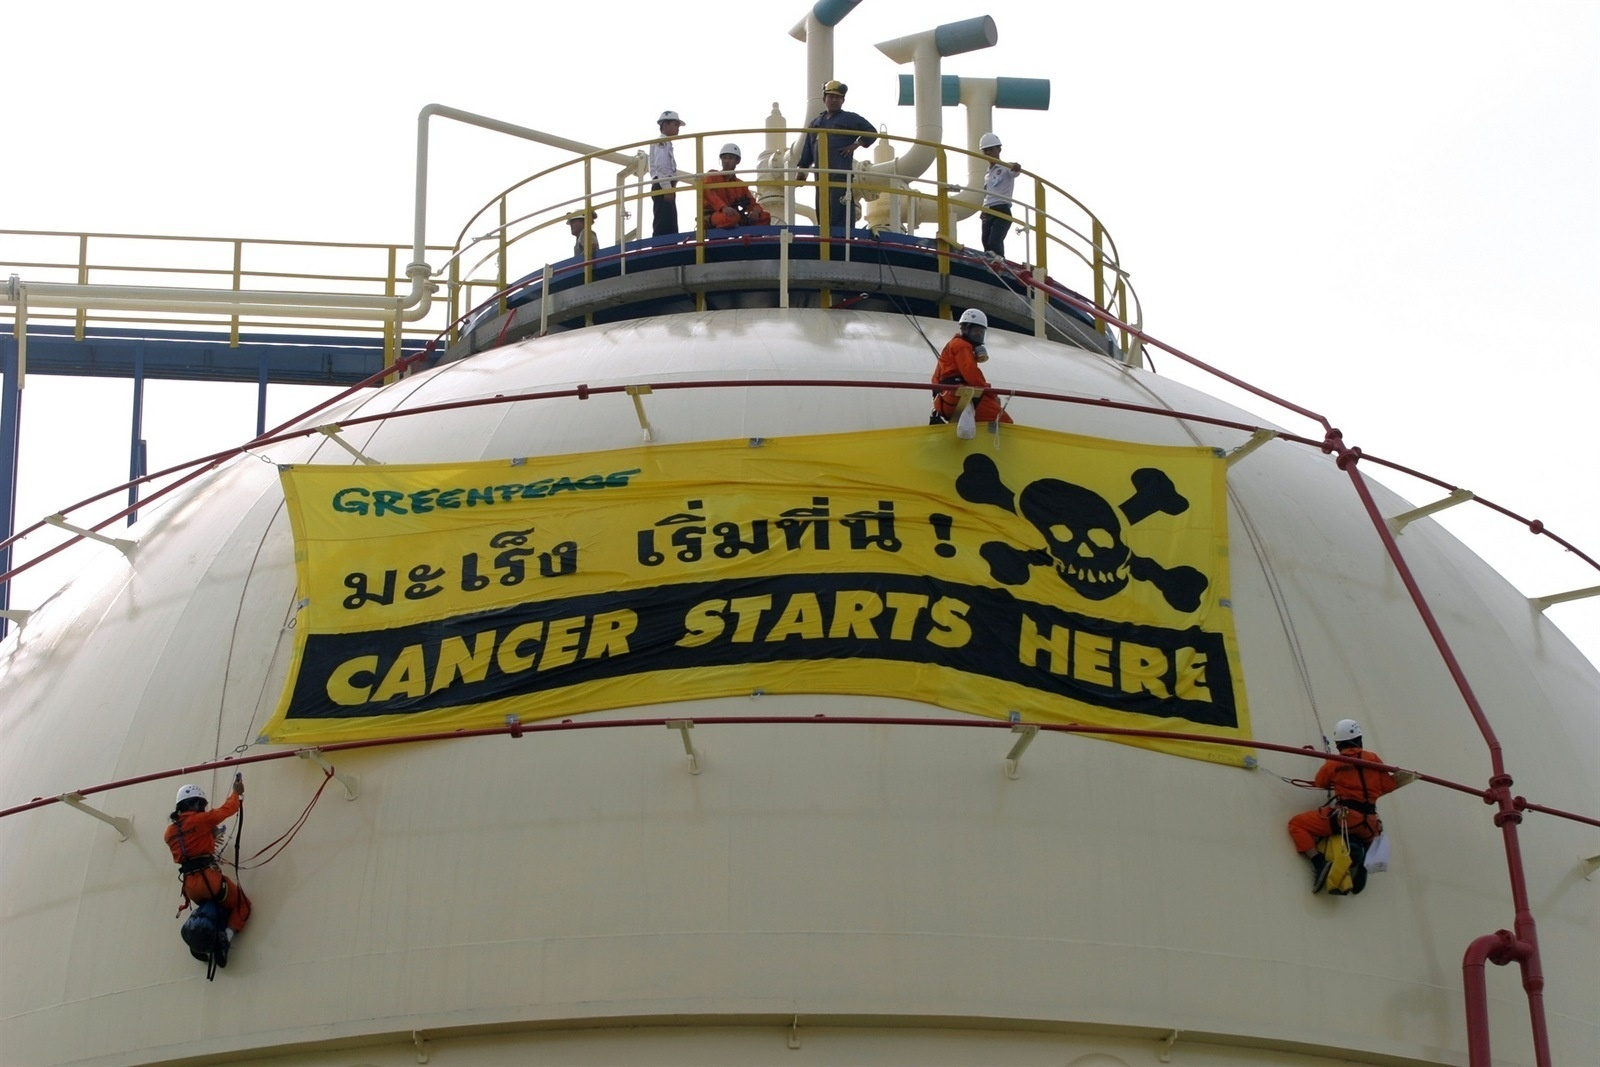 """Activists from the environmental group Greenpeace staging a protest at a processing and storage facility owned by the Thai Plastic and Chemicals Plc (TPC), which contains the highly toxic and carcinogenic chemical Vinyl Chloride Monomer (VCM). The activists climbed onto a storage tank to hang a banner """"Cancer Starts Here"""".   Greenpeace is demanding that TPC's factory operations be shut down after finding evidence that wastewater containing a chemical that can cause cancer and pose threats to the environment are being discharged by the company into the Chao Phraya River."""